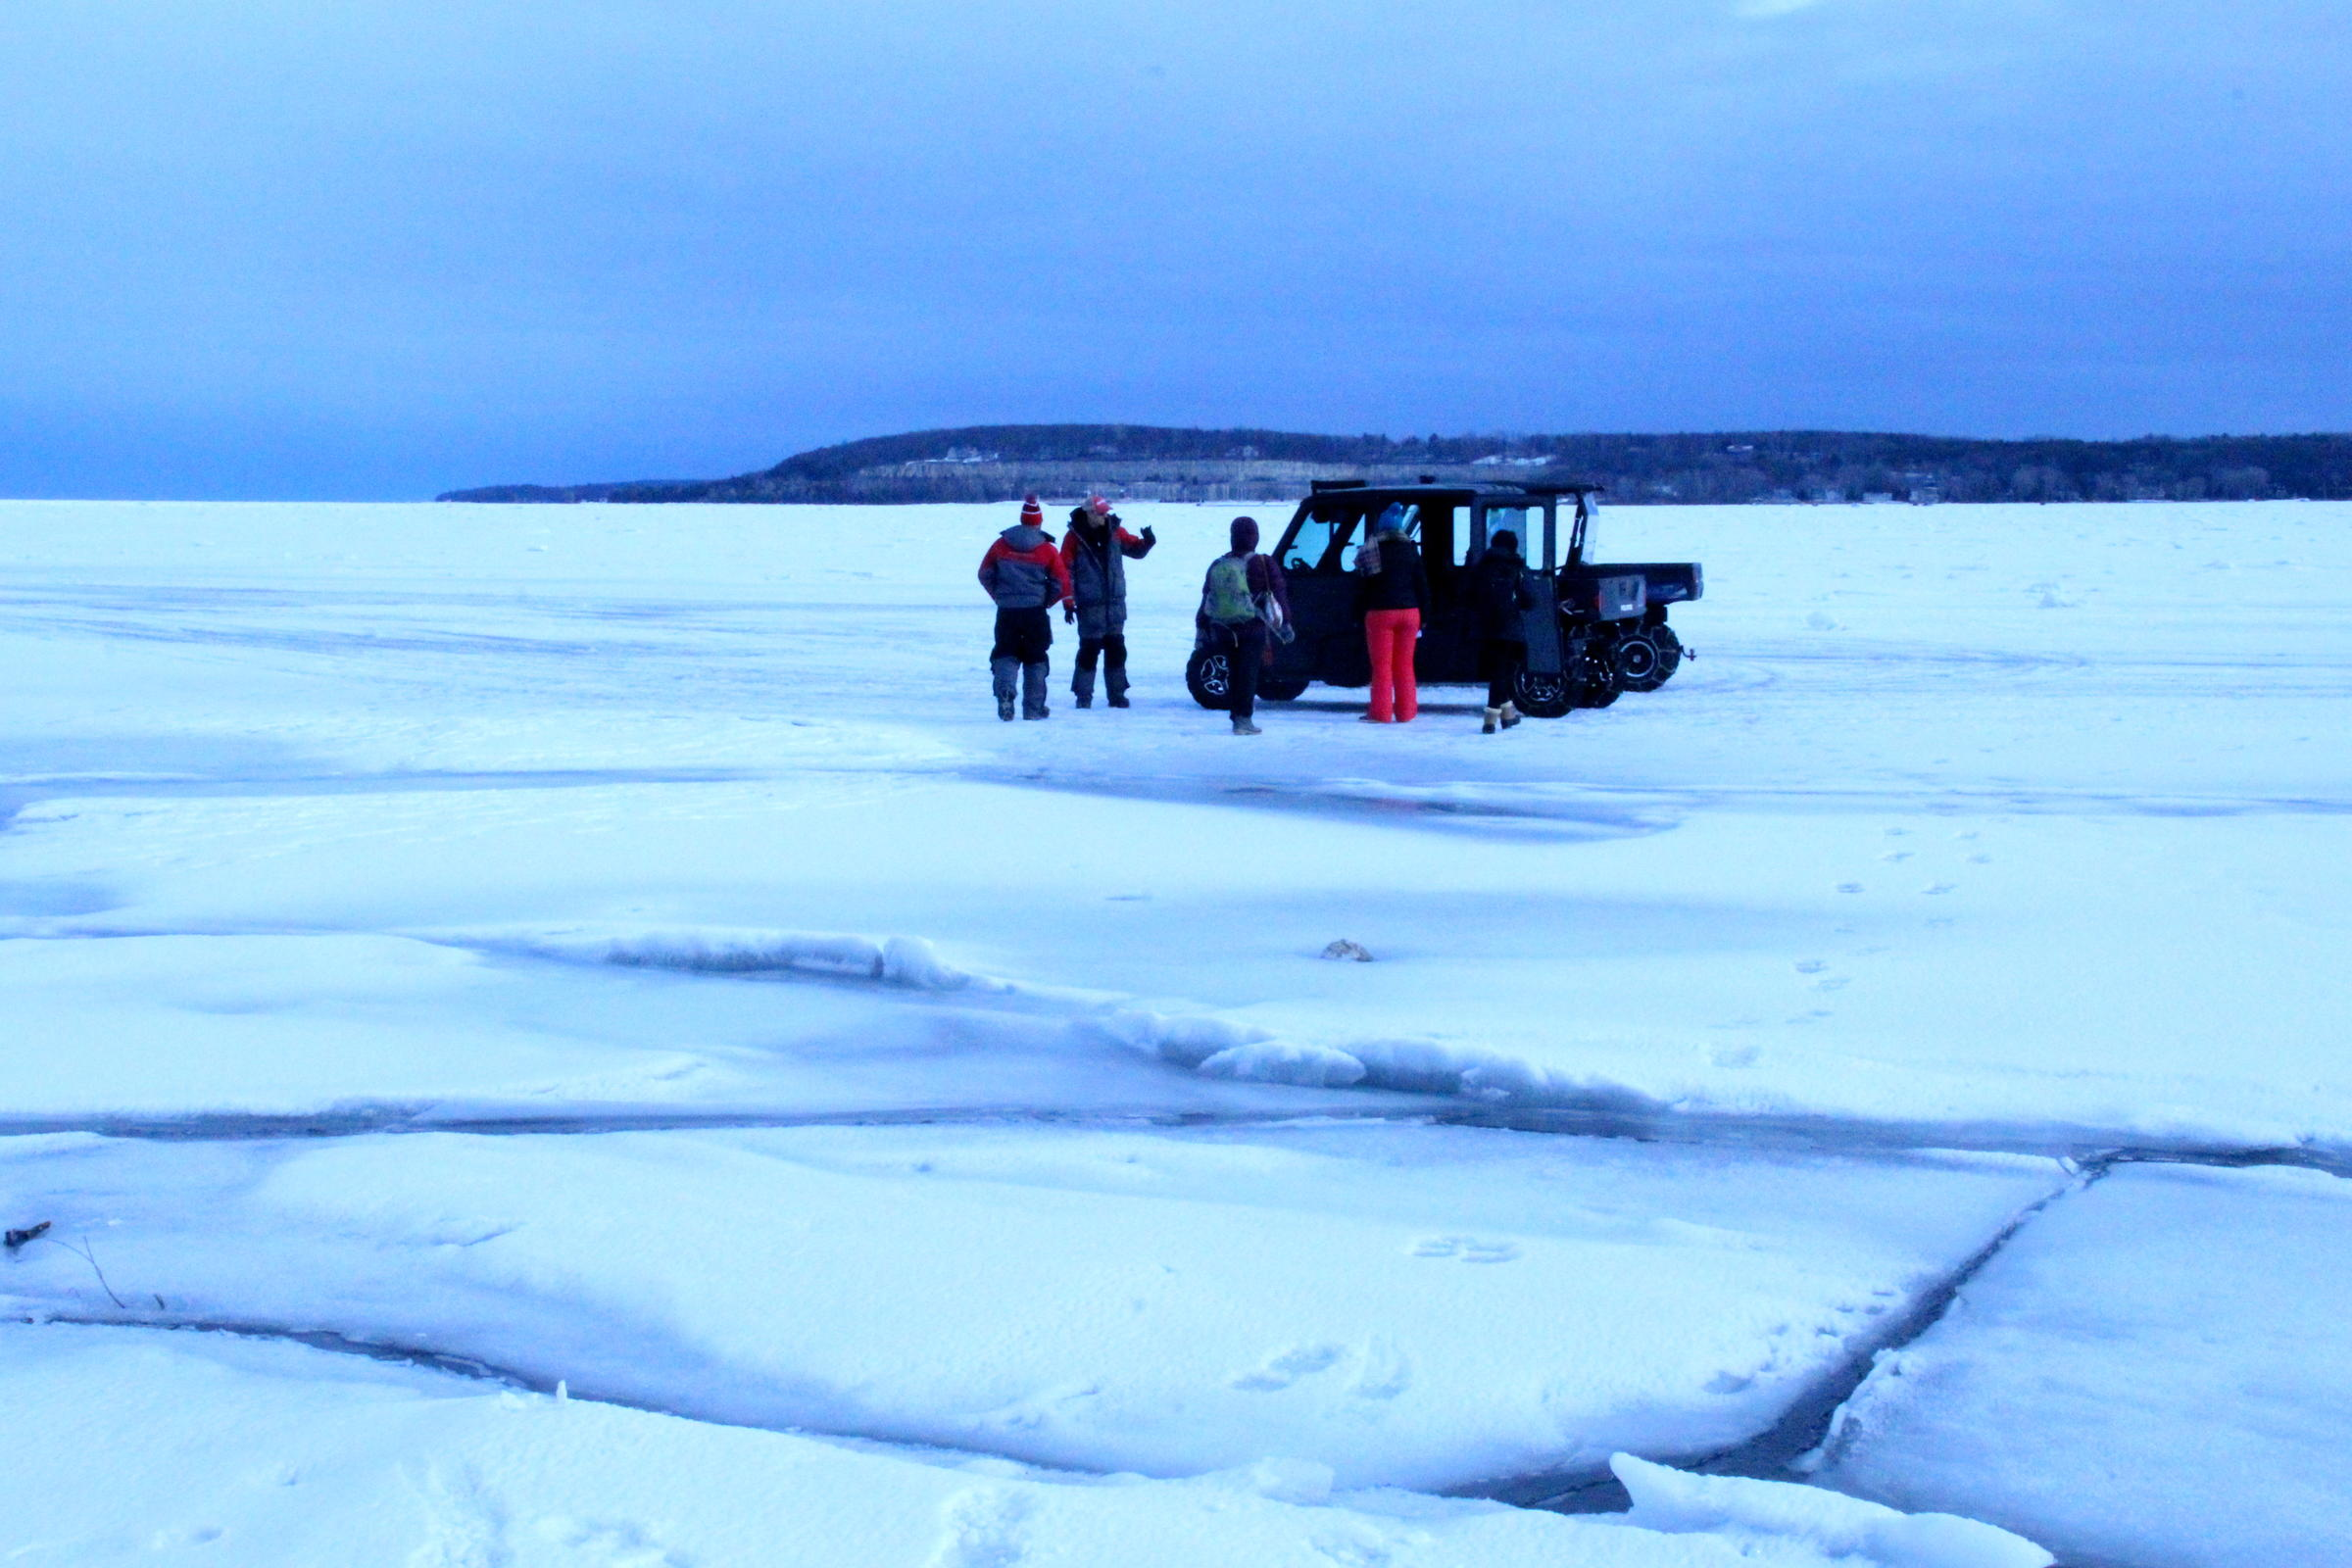 ice fishing on sturgeon bay wisconsin kcbx